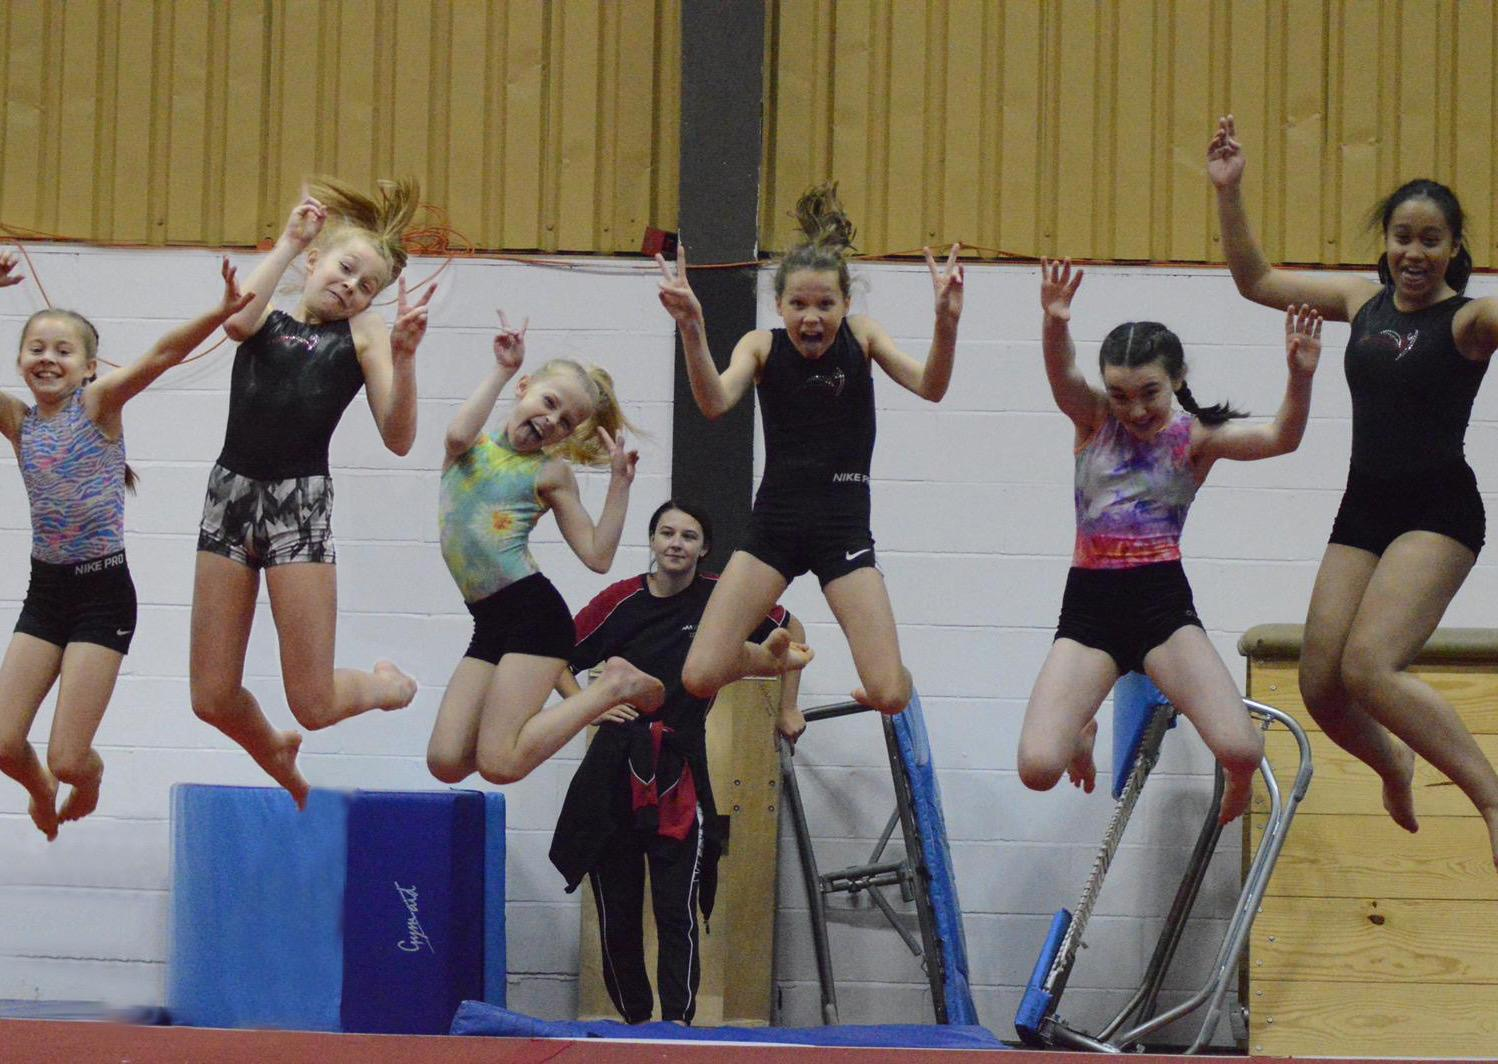 AAAsports – Gymnastics, Trampoline & Cheerleading Classes